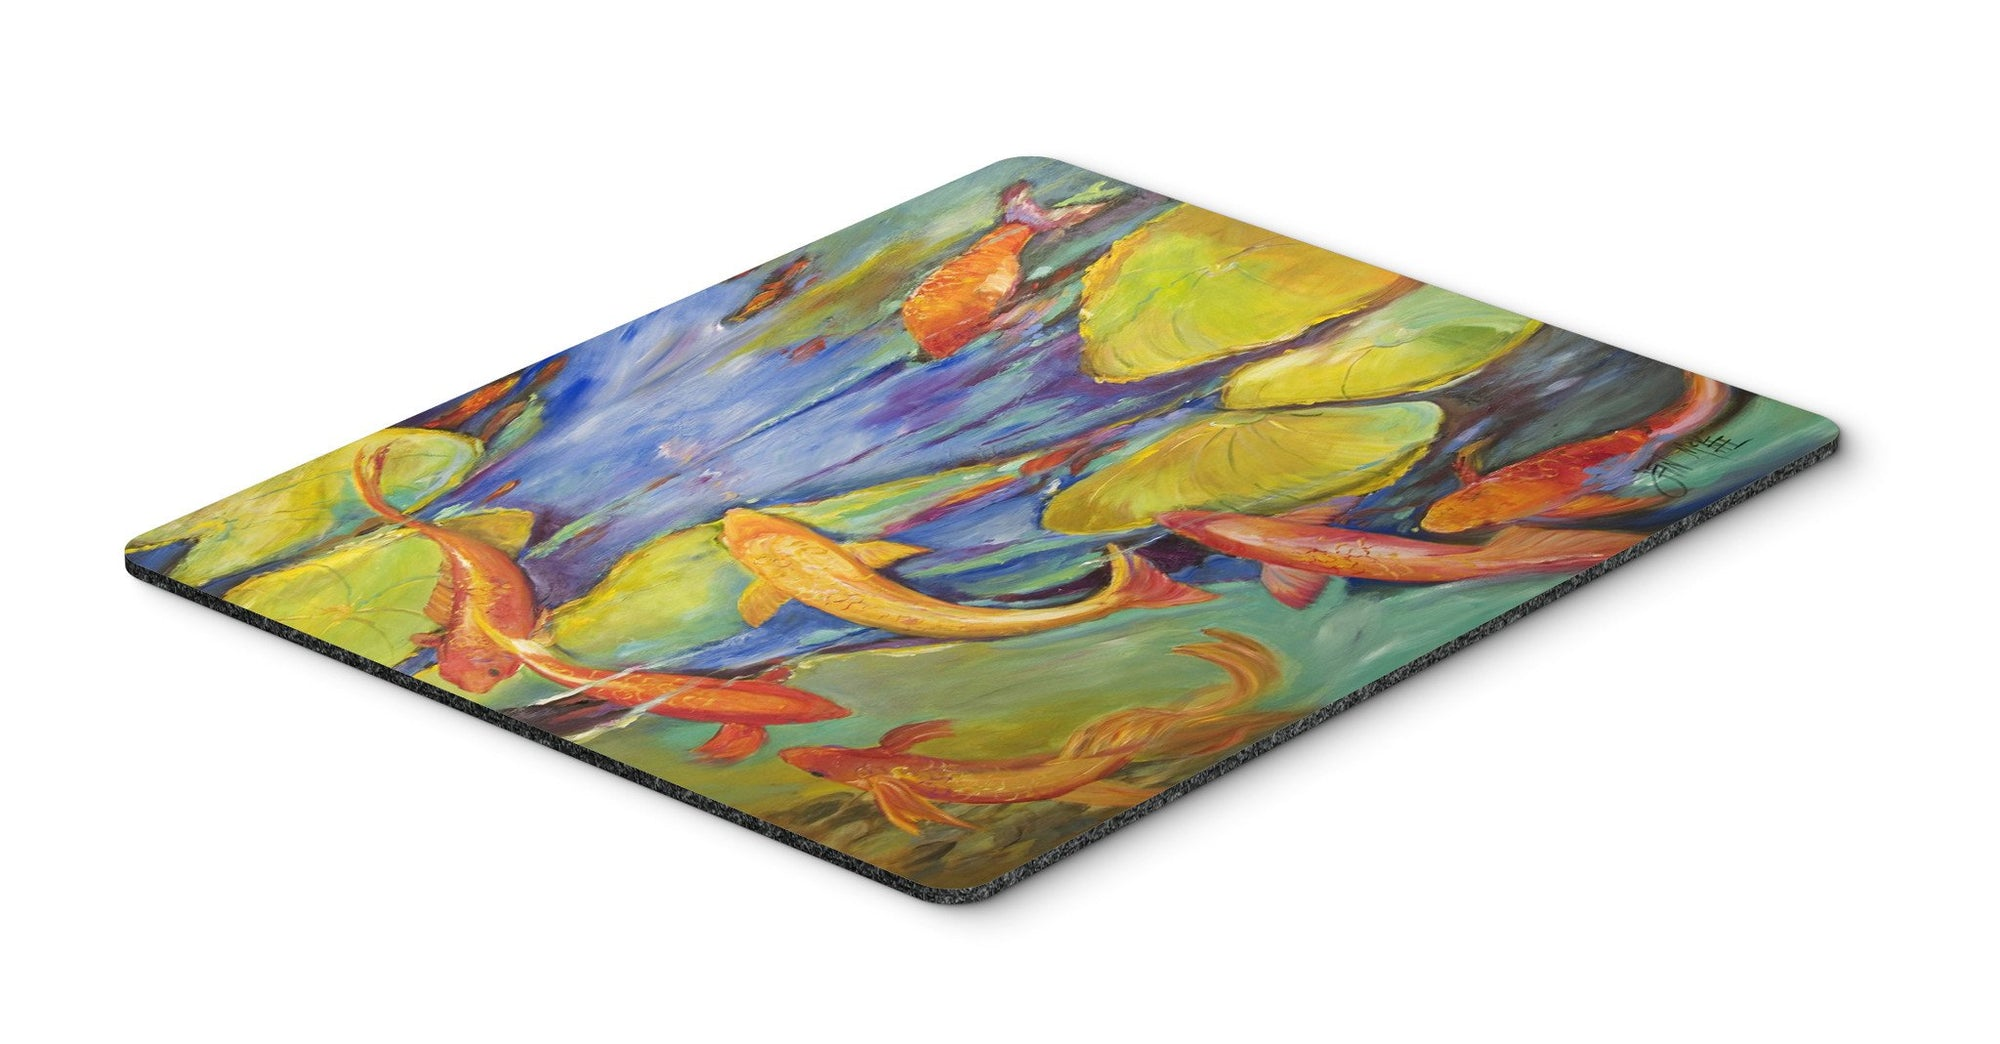 Buy this Koi Mouse Pad, Hot Pad or Trivet JMK1115MP